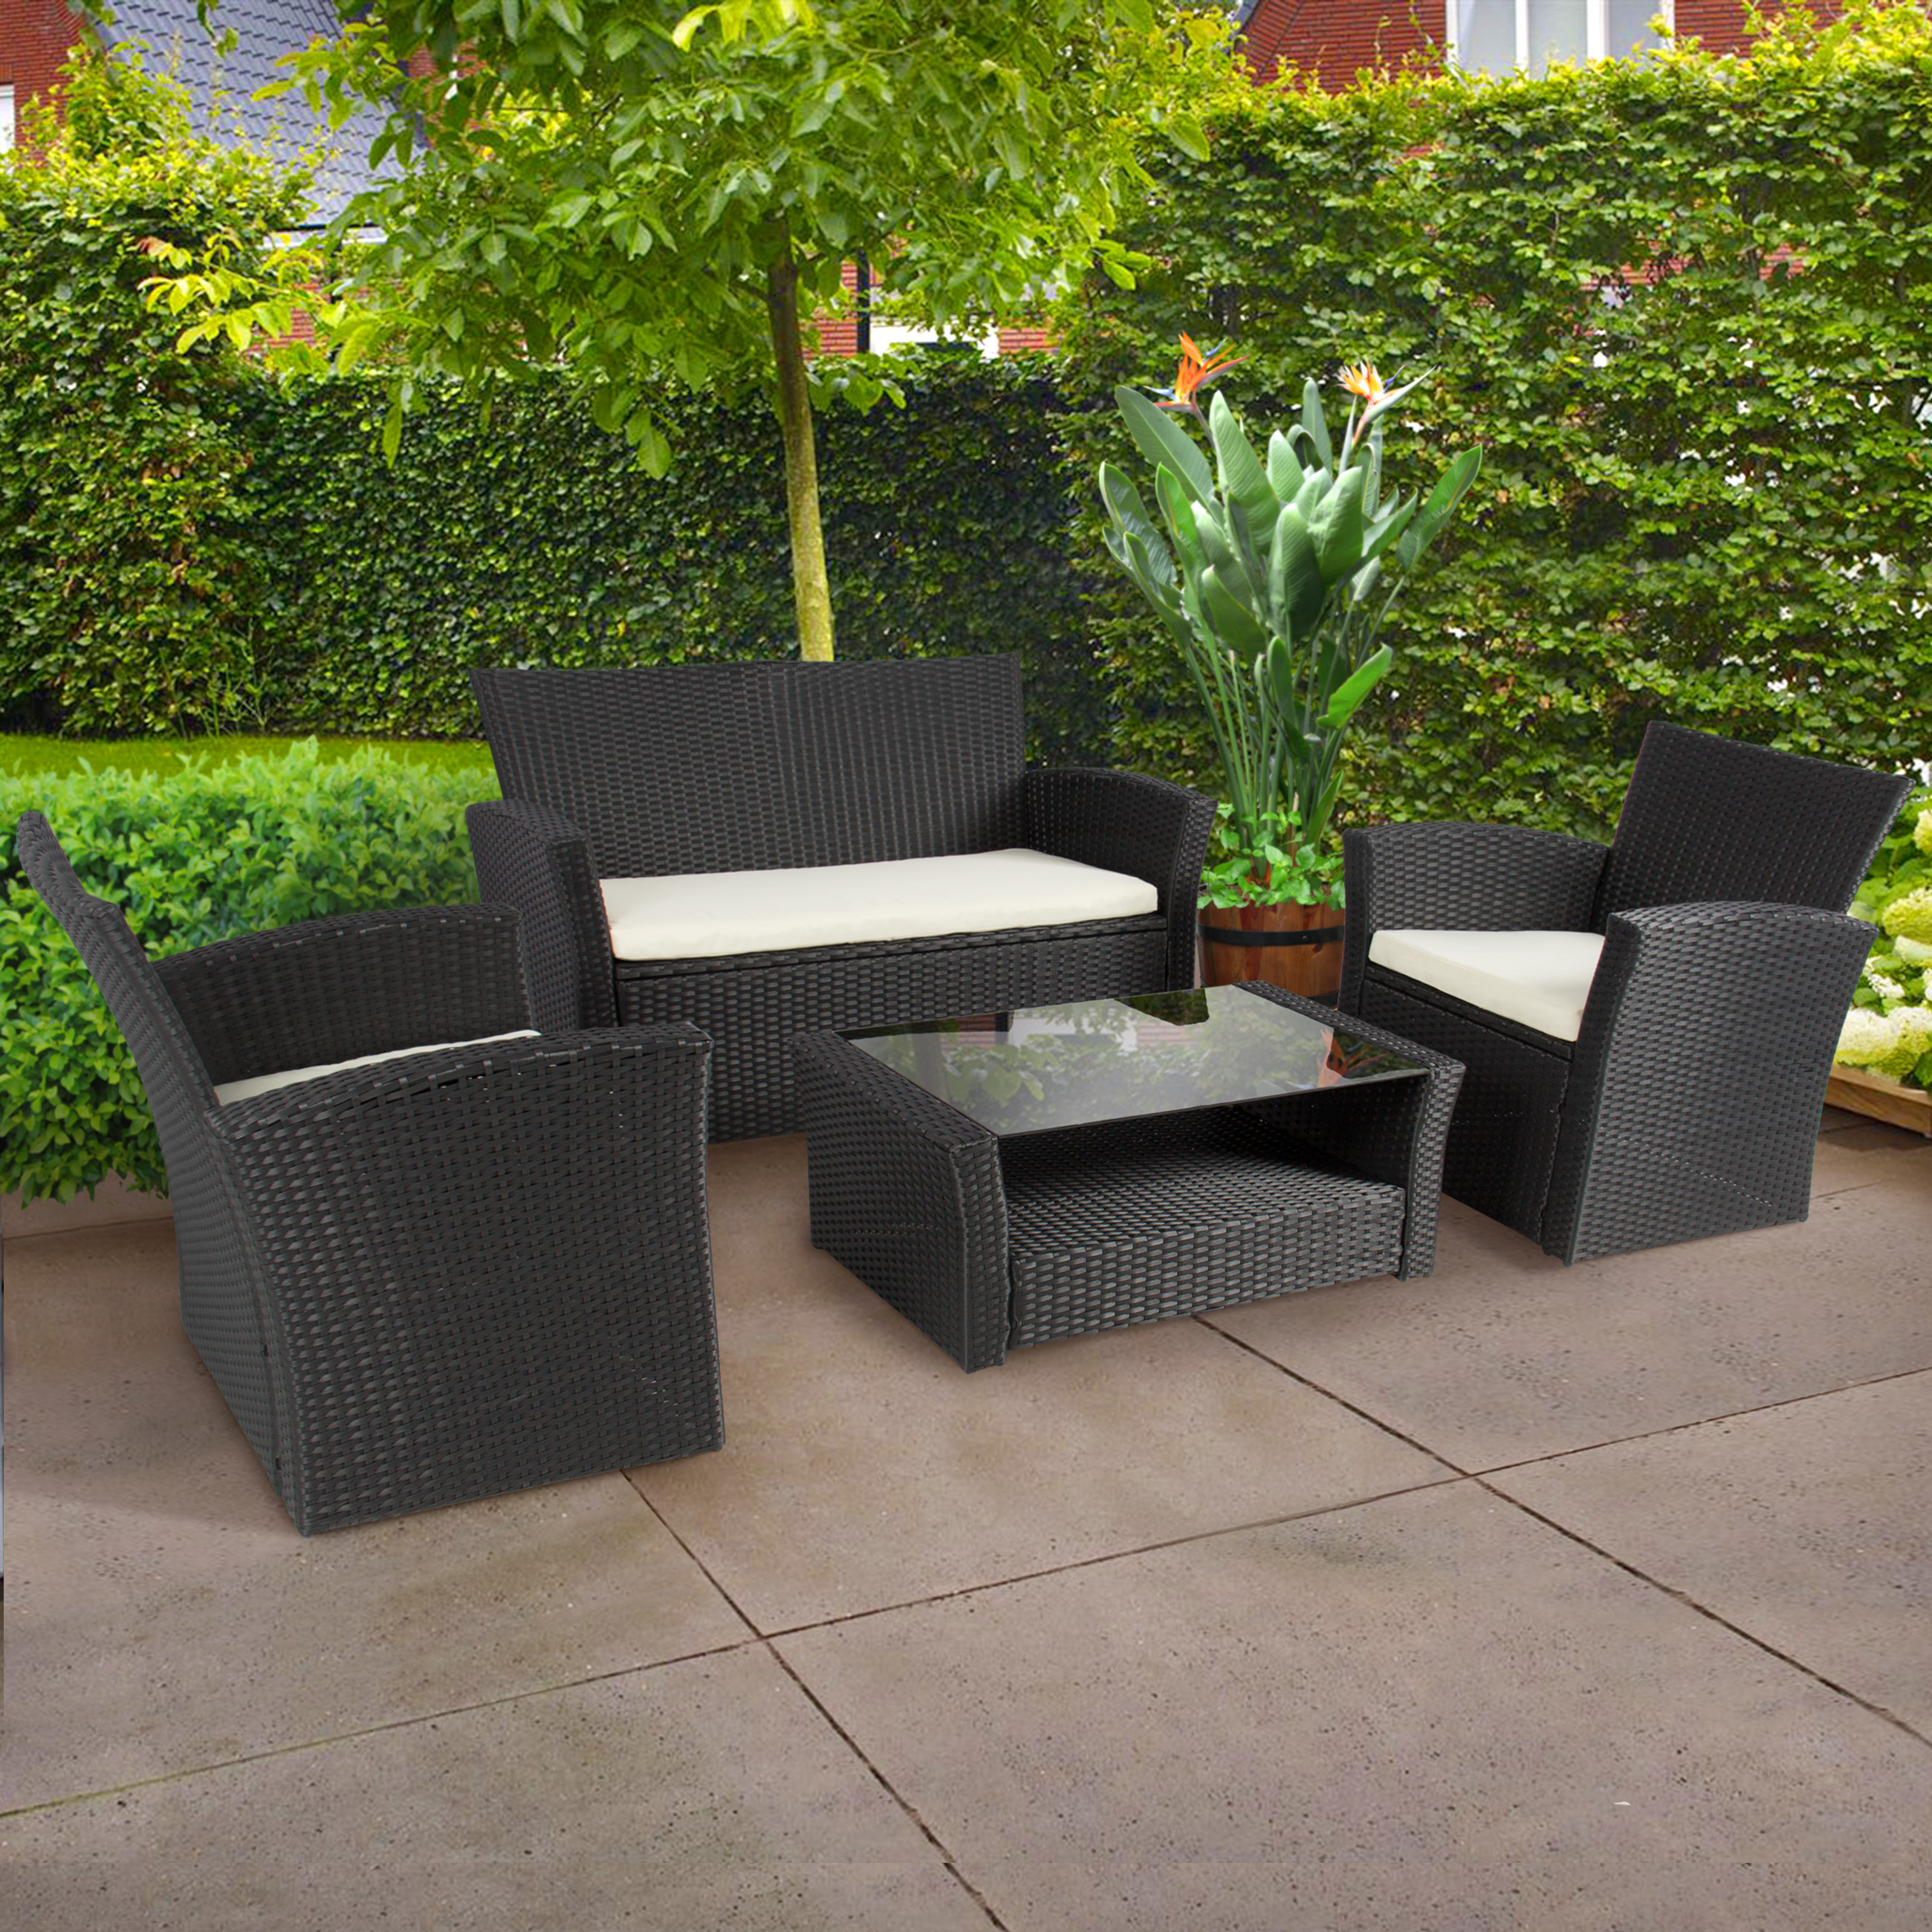 Rattan Sofa Set Reviews 4pc Outdoor Patio Garden Furniture Wicker Rattan Sofa Set